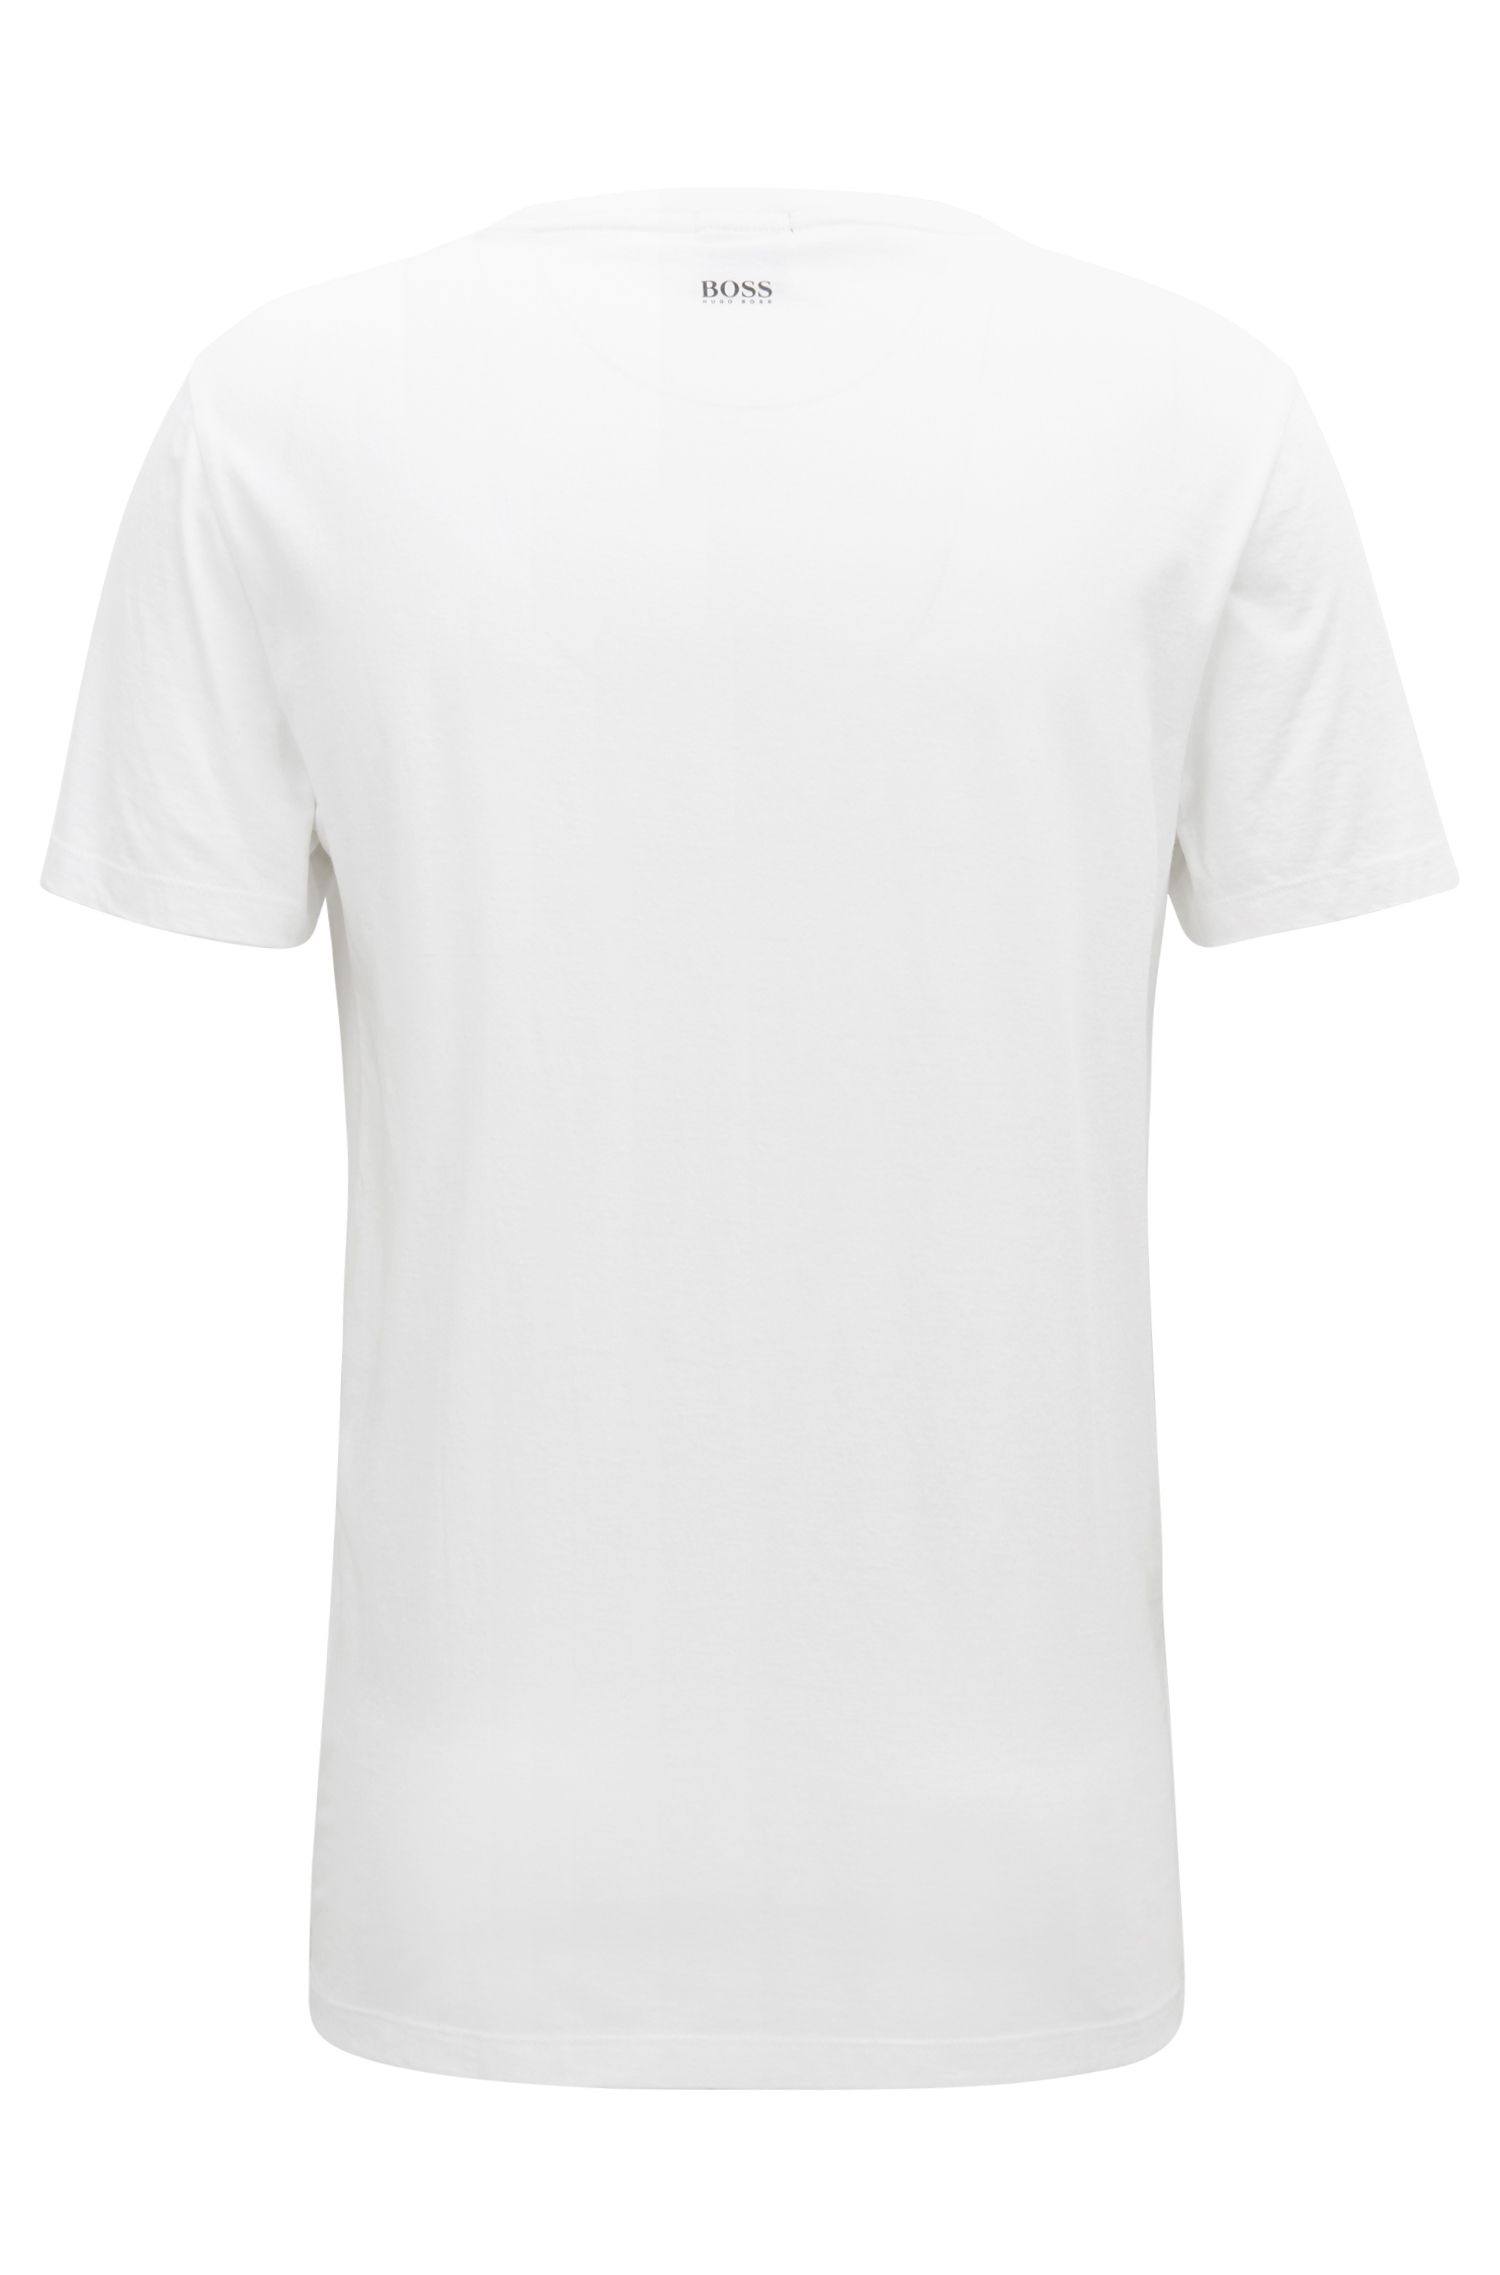 Photographic-print T-shirt in washed Pima cotton, White